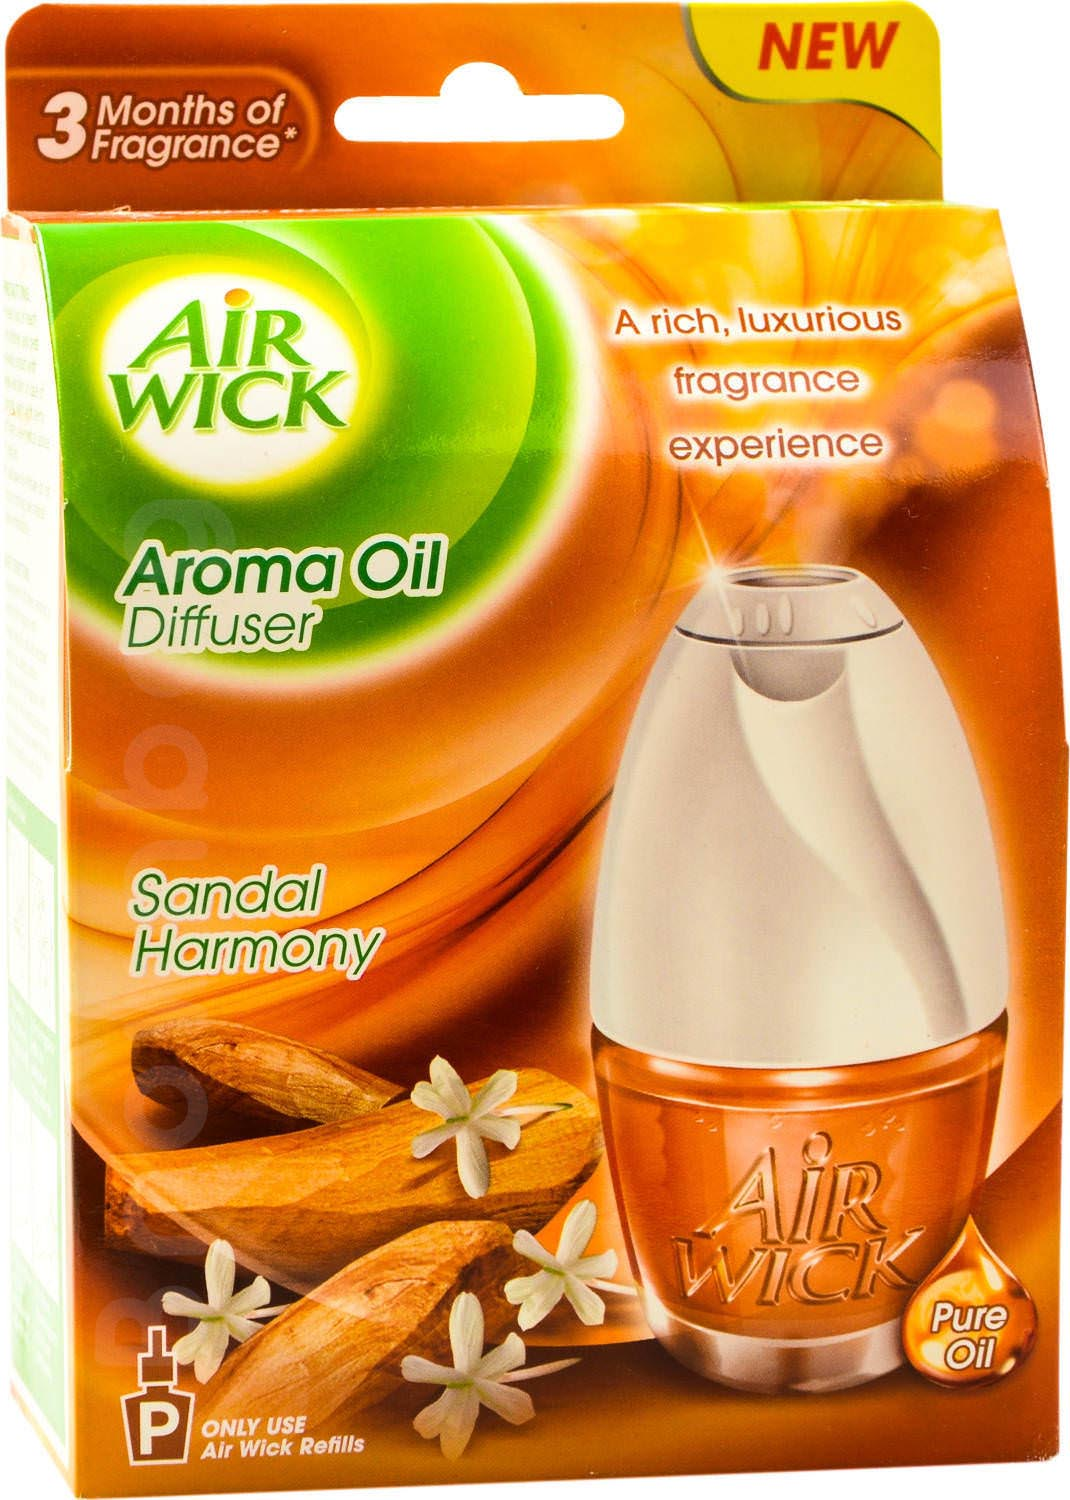 AIR WICK Aroma Oil Diffuser with Sandal Harmony